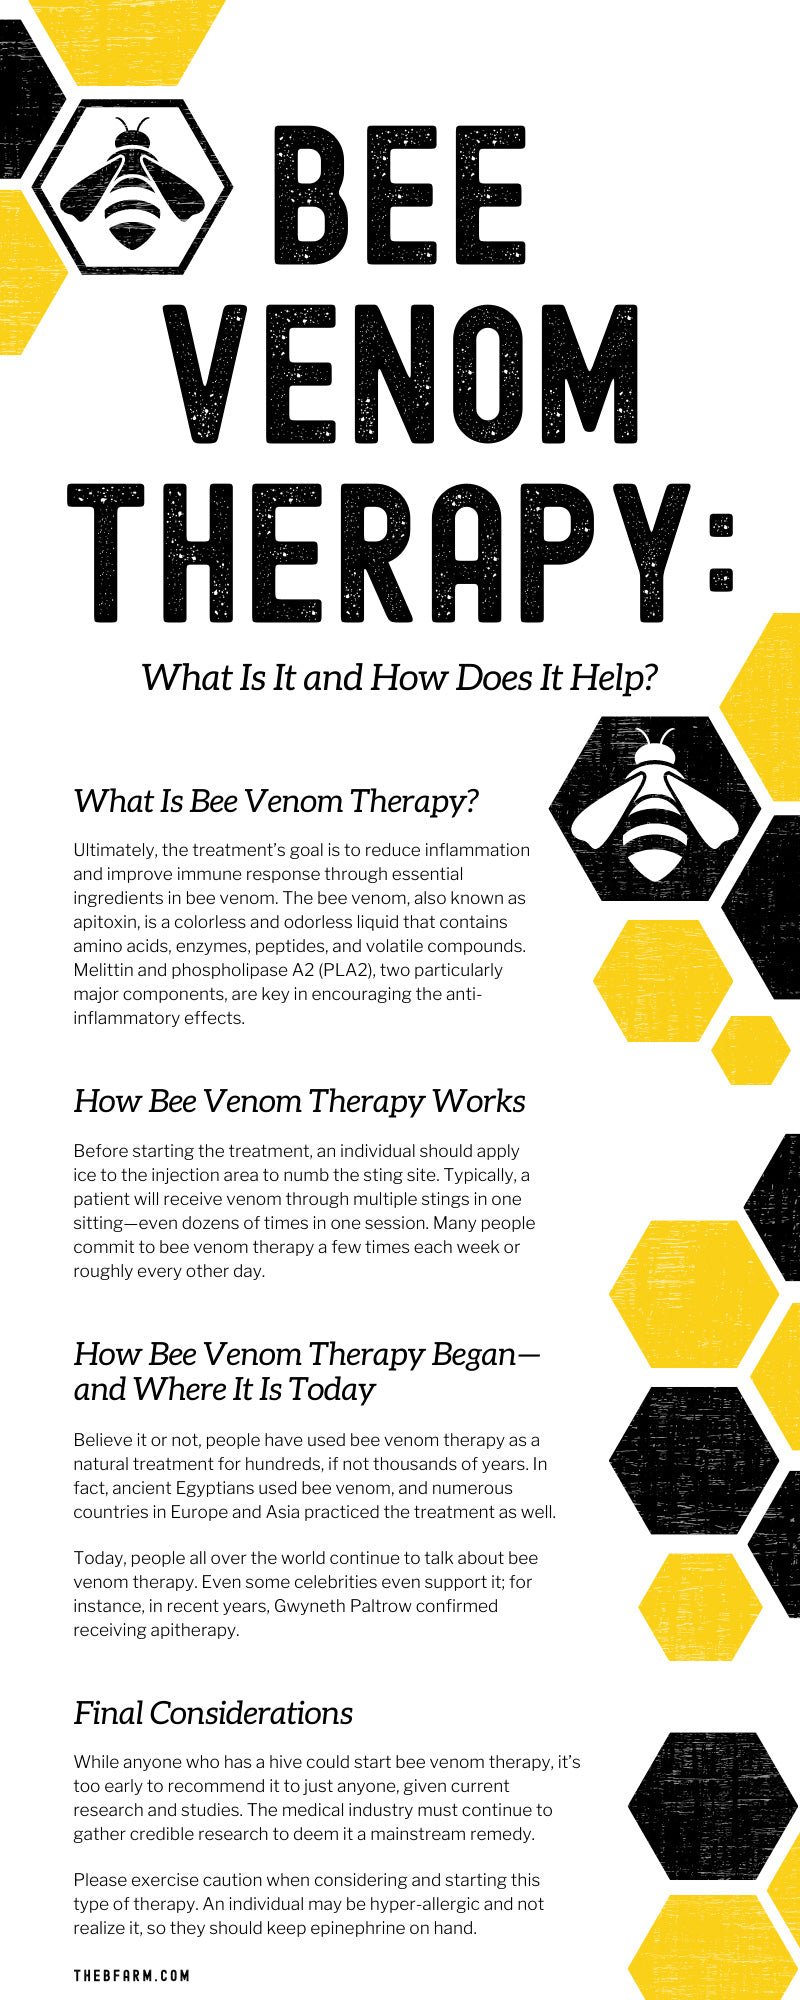 Bee Venom Therapy: What Is It and How Does It Help?